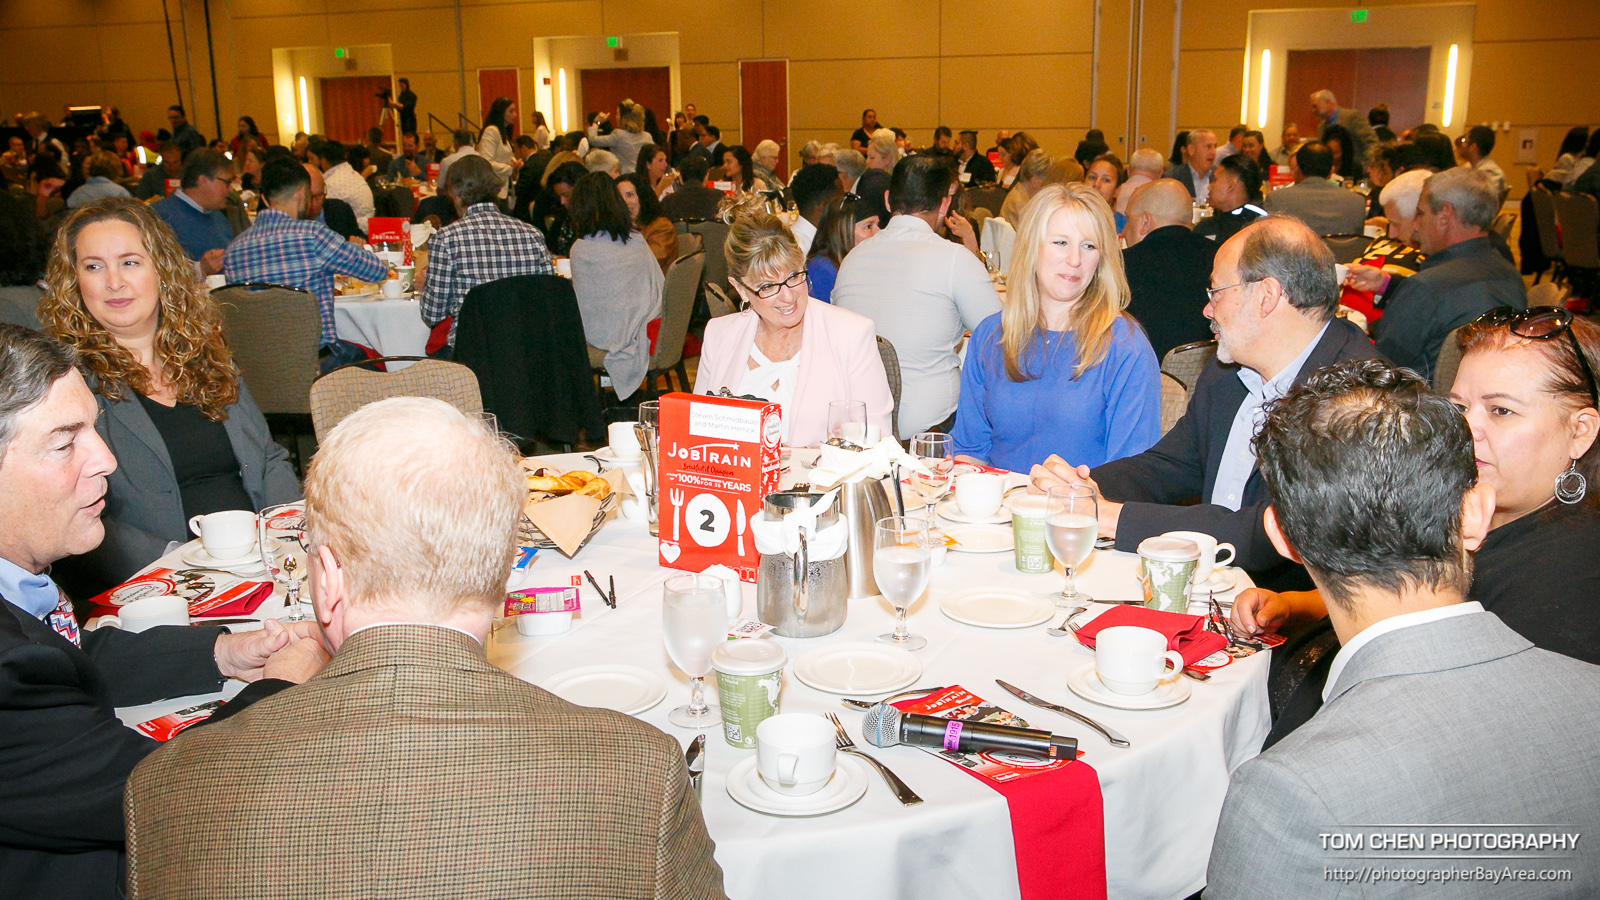 35th Annual Breakfast of Champions Photo Gallery